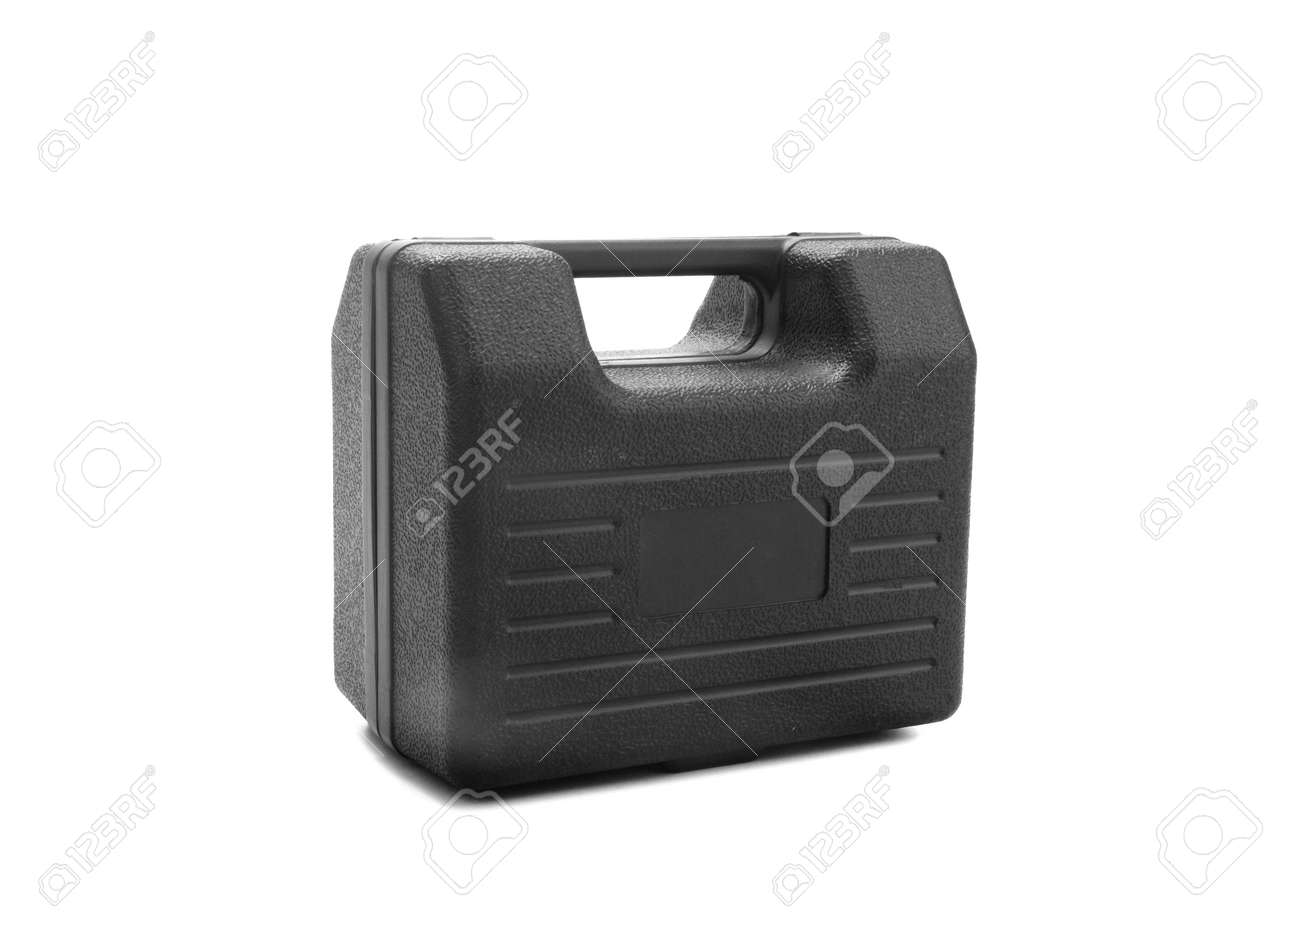 Box for tools. Isolated object on a white background Stock Photo - 10351523